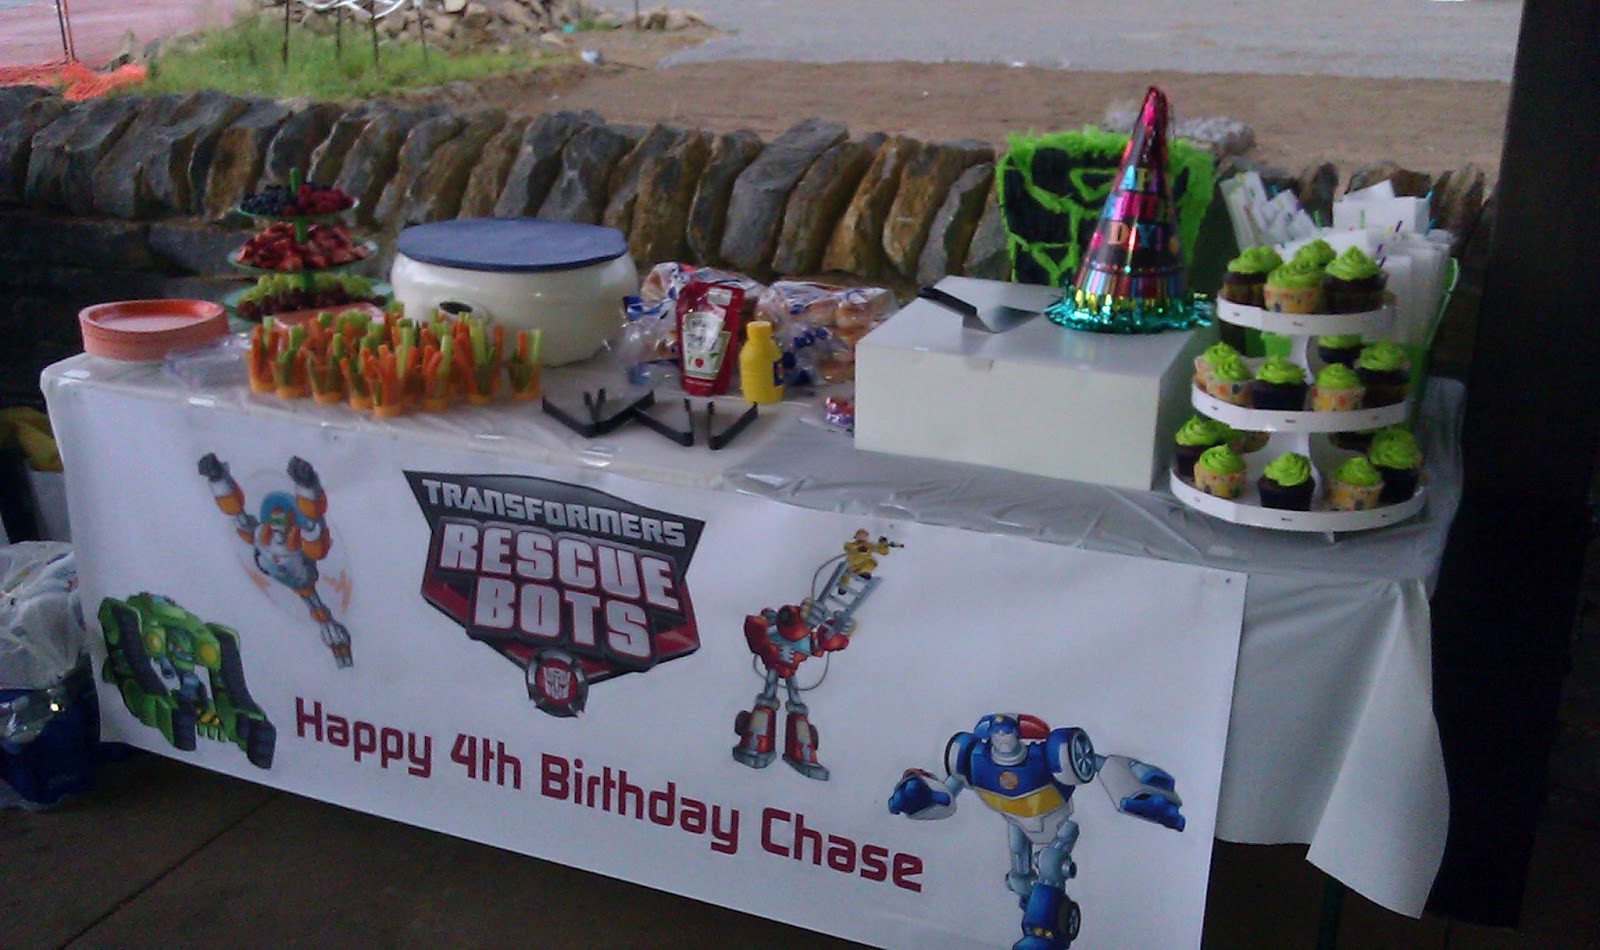 Best ideas about Rescue Bots Birthday Party . Save or Pin Transformer Rescue Bots Birthday Party Now.